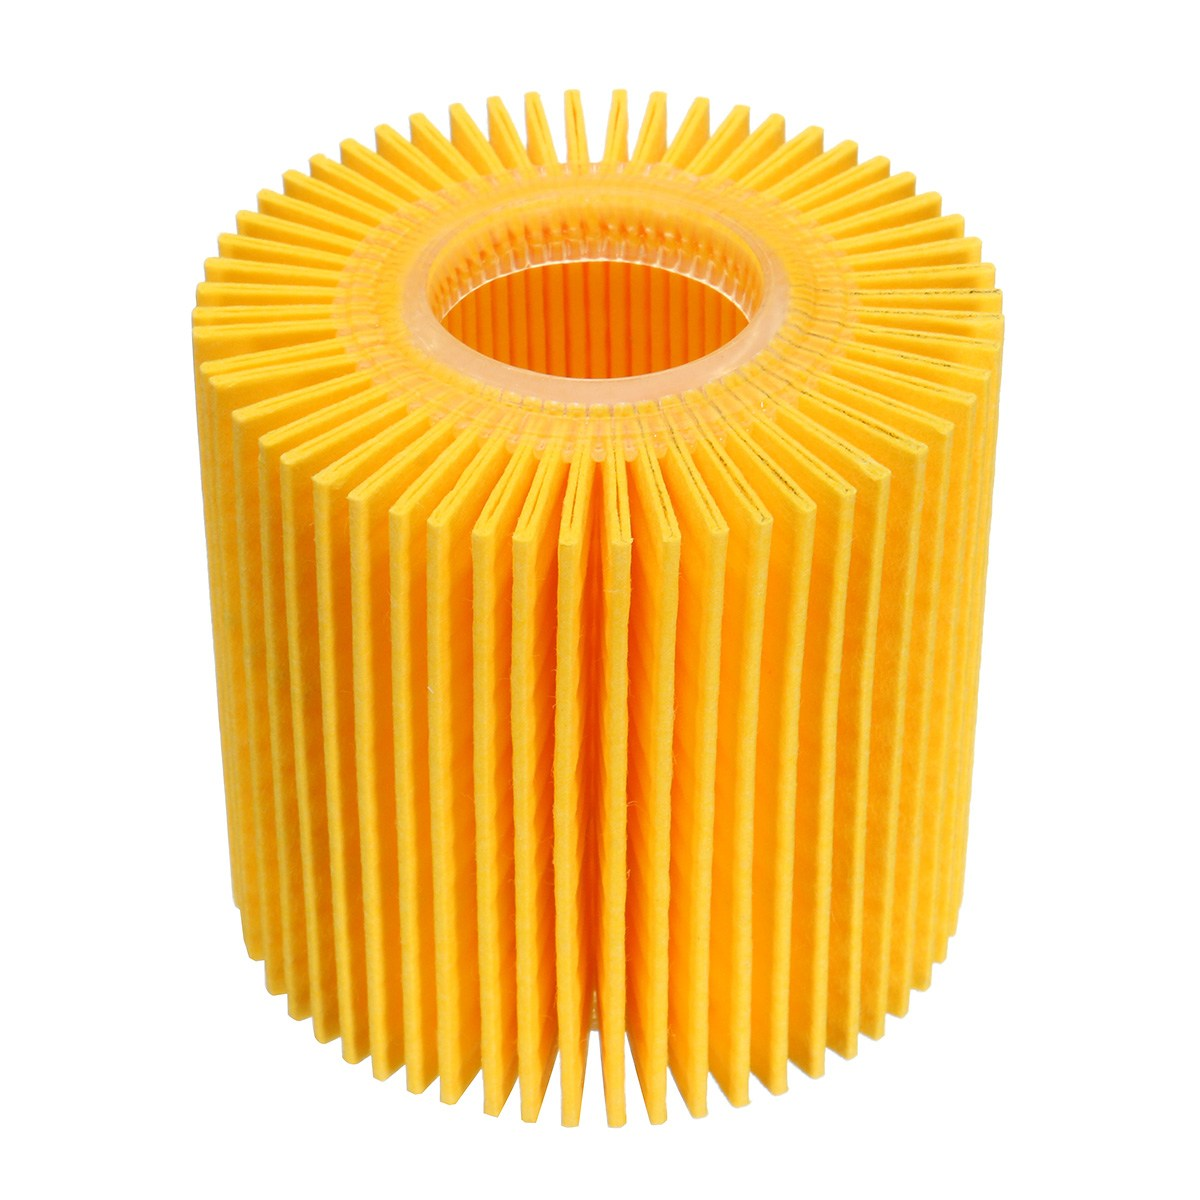 Oil Filter Petrol Engine For Toyota Avalon Camry Highlander 04152-YZZA1